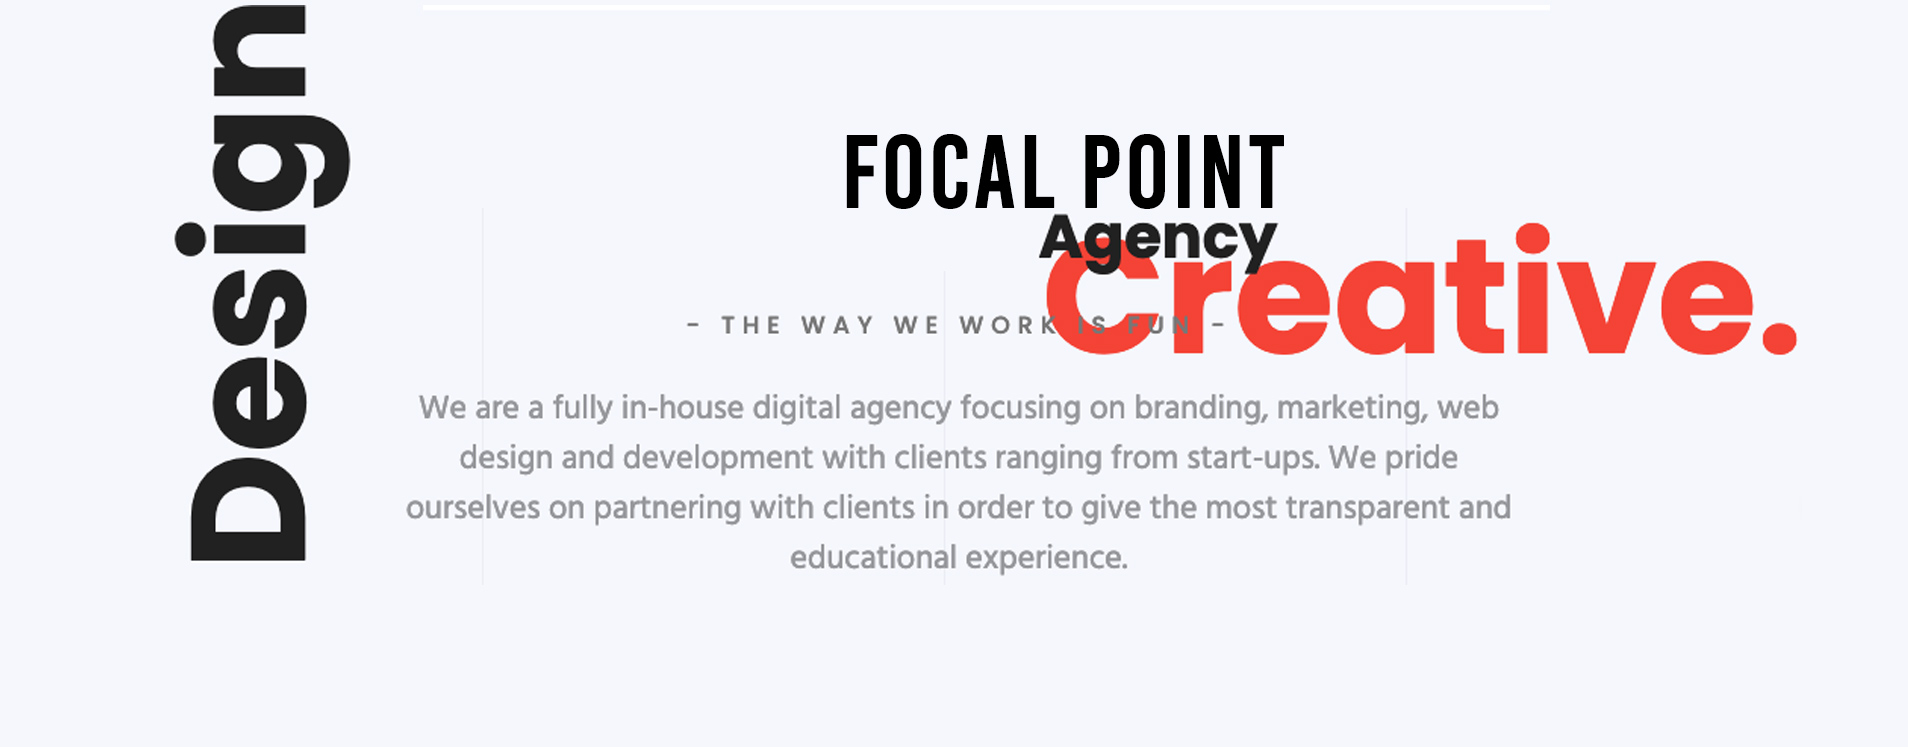 Creative Design with Focal Point Agency